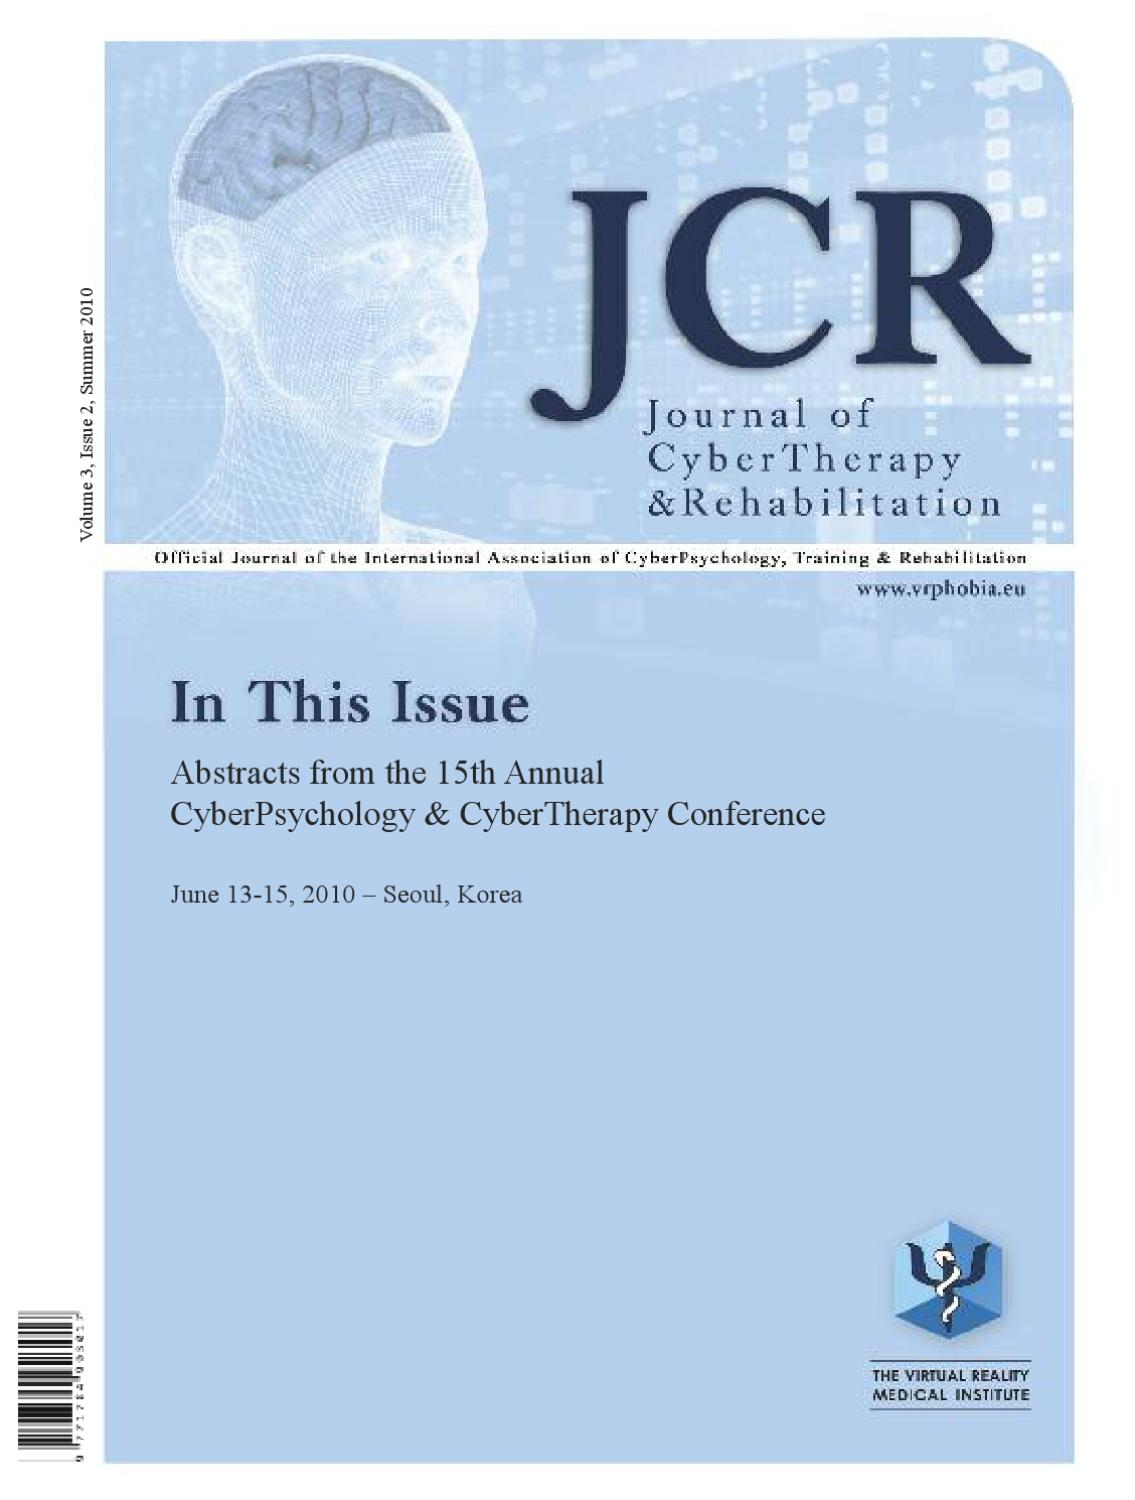 Journal of CyberTherapy and Rehabilitation cad223aad78bf